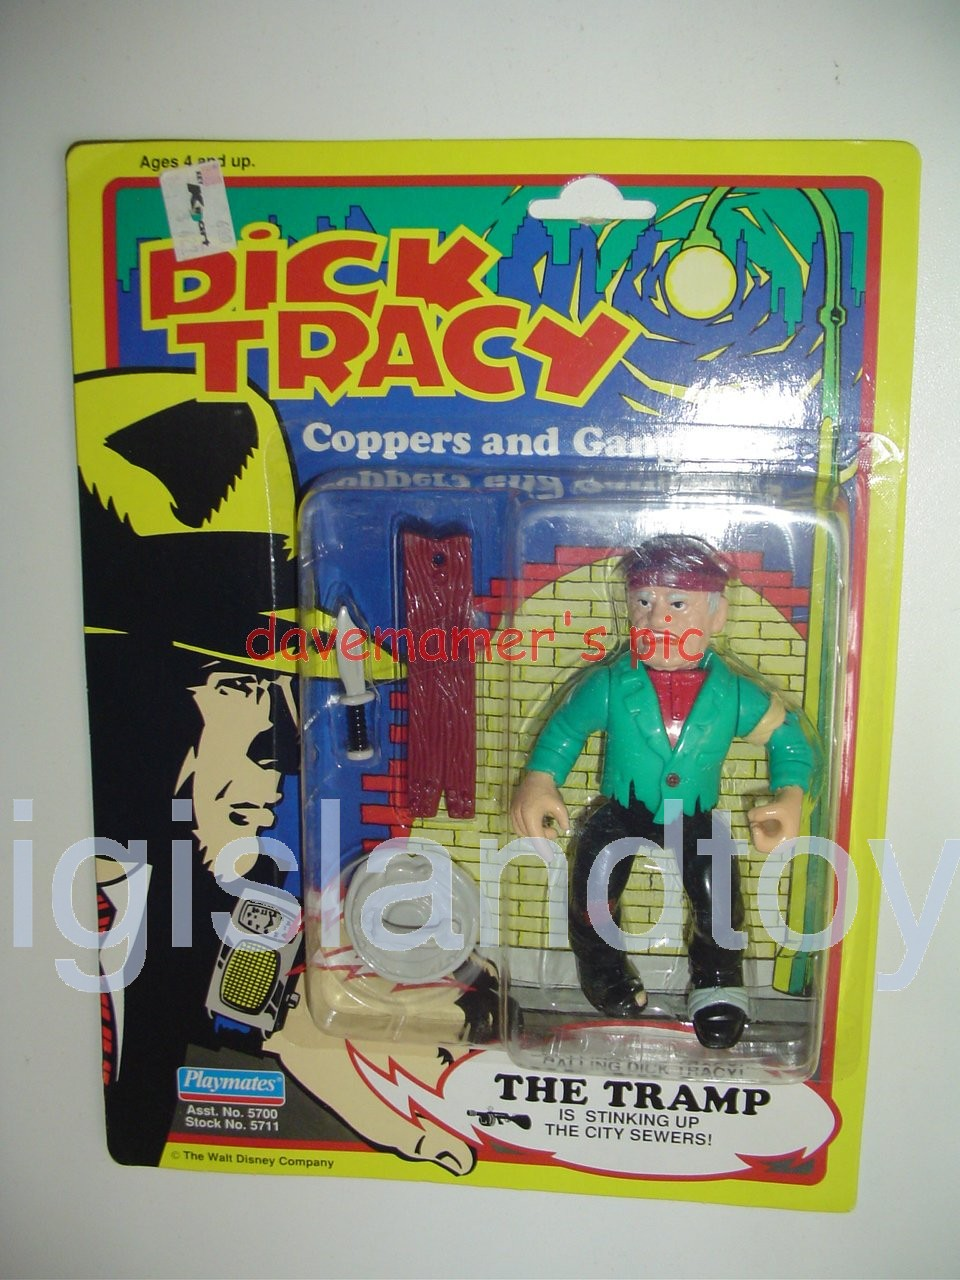 Dick Tracy Coppers and Gangsters   THE TRAMP